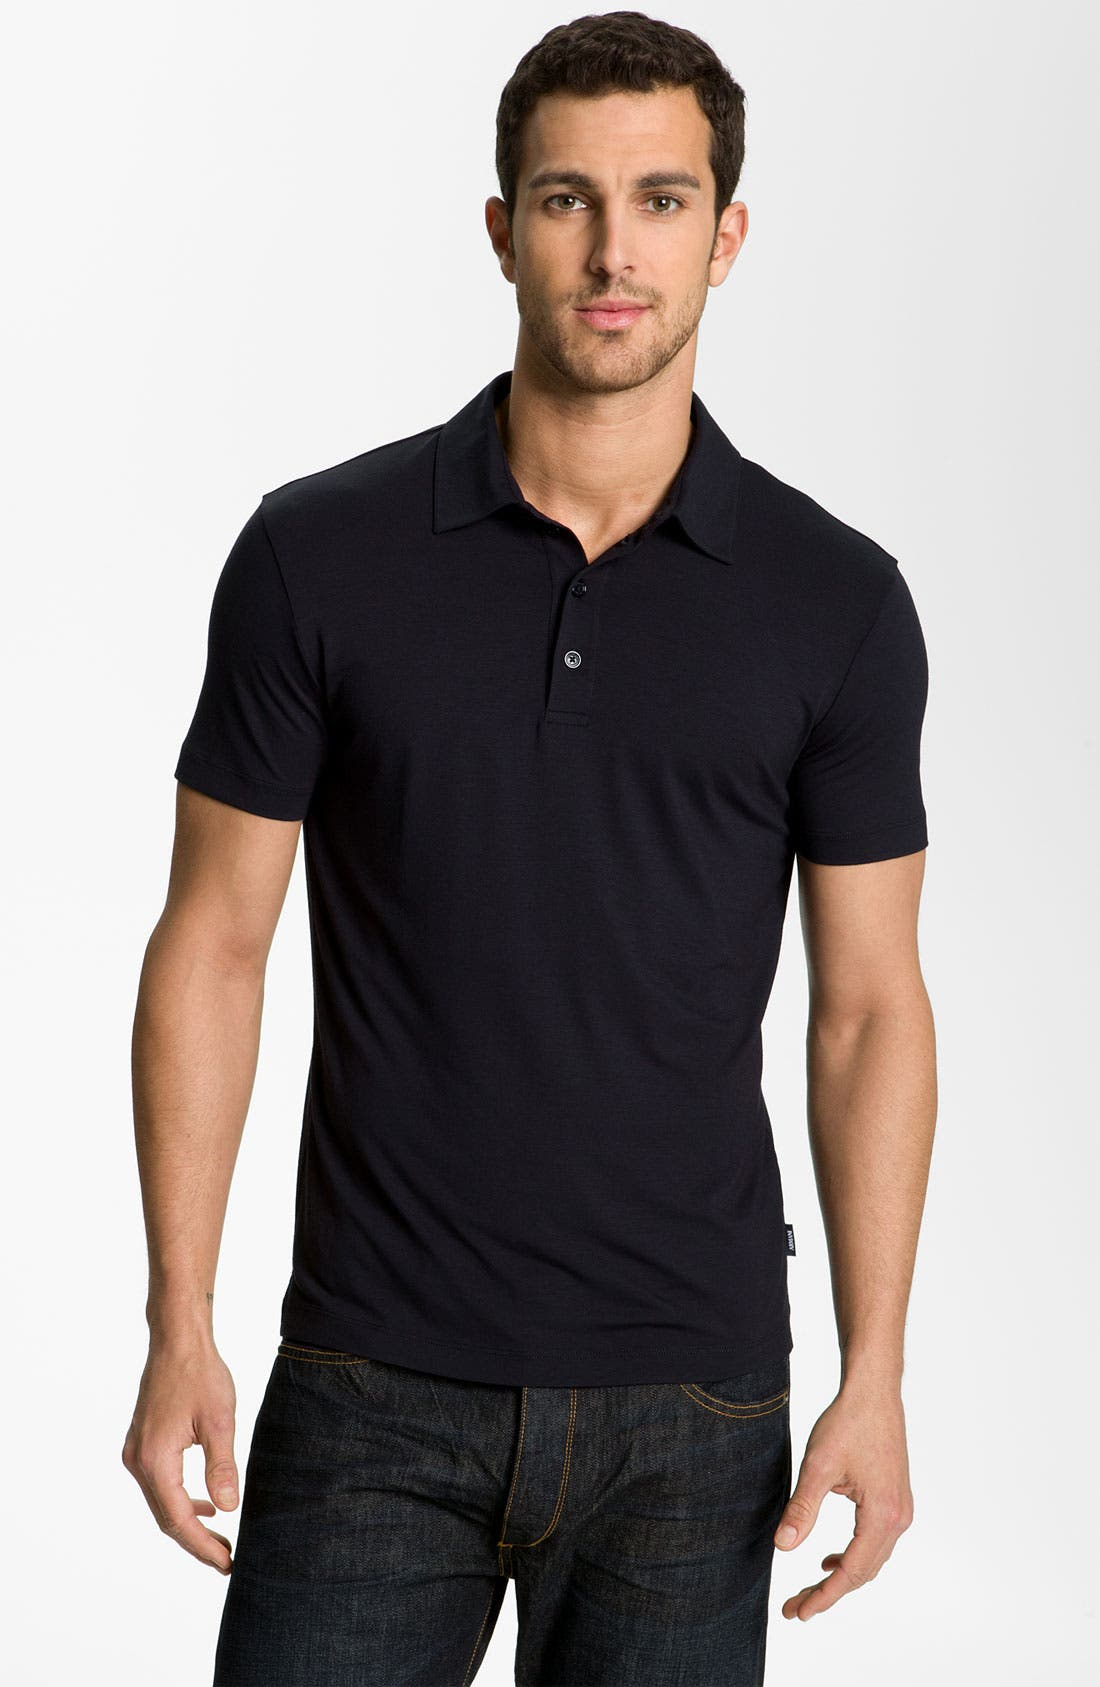 Alternate Image 1 Selected - Armani Collezioni Trim Fit Polo